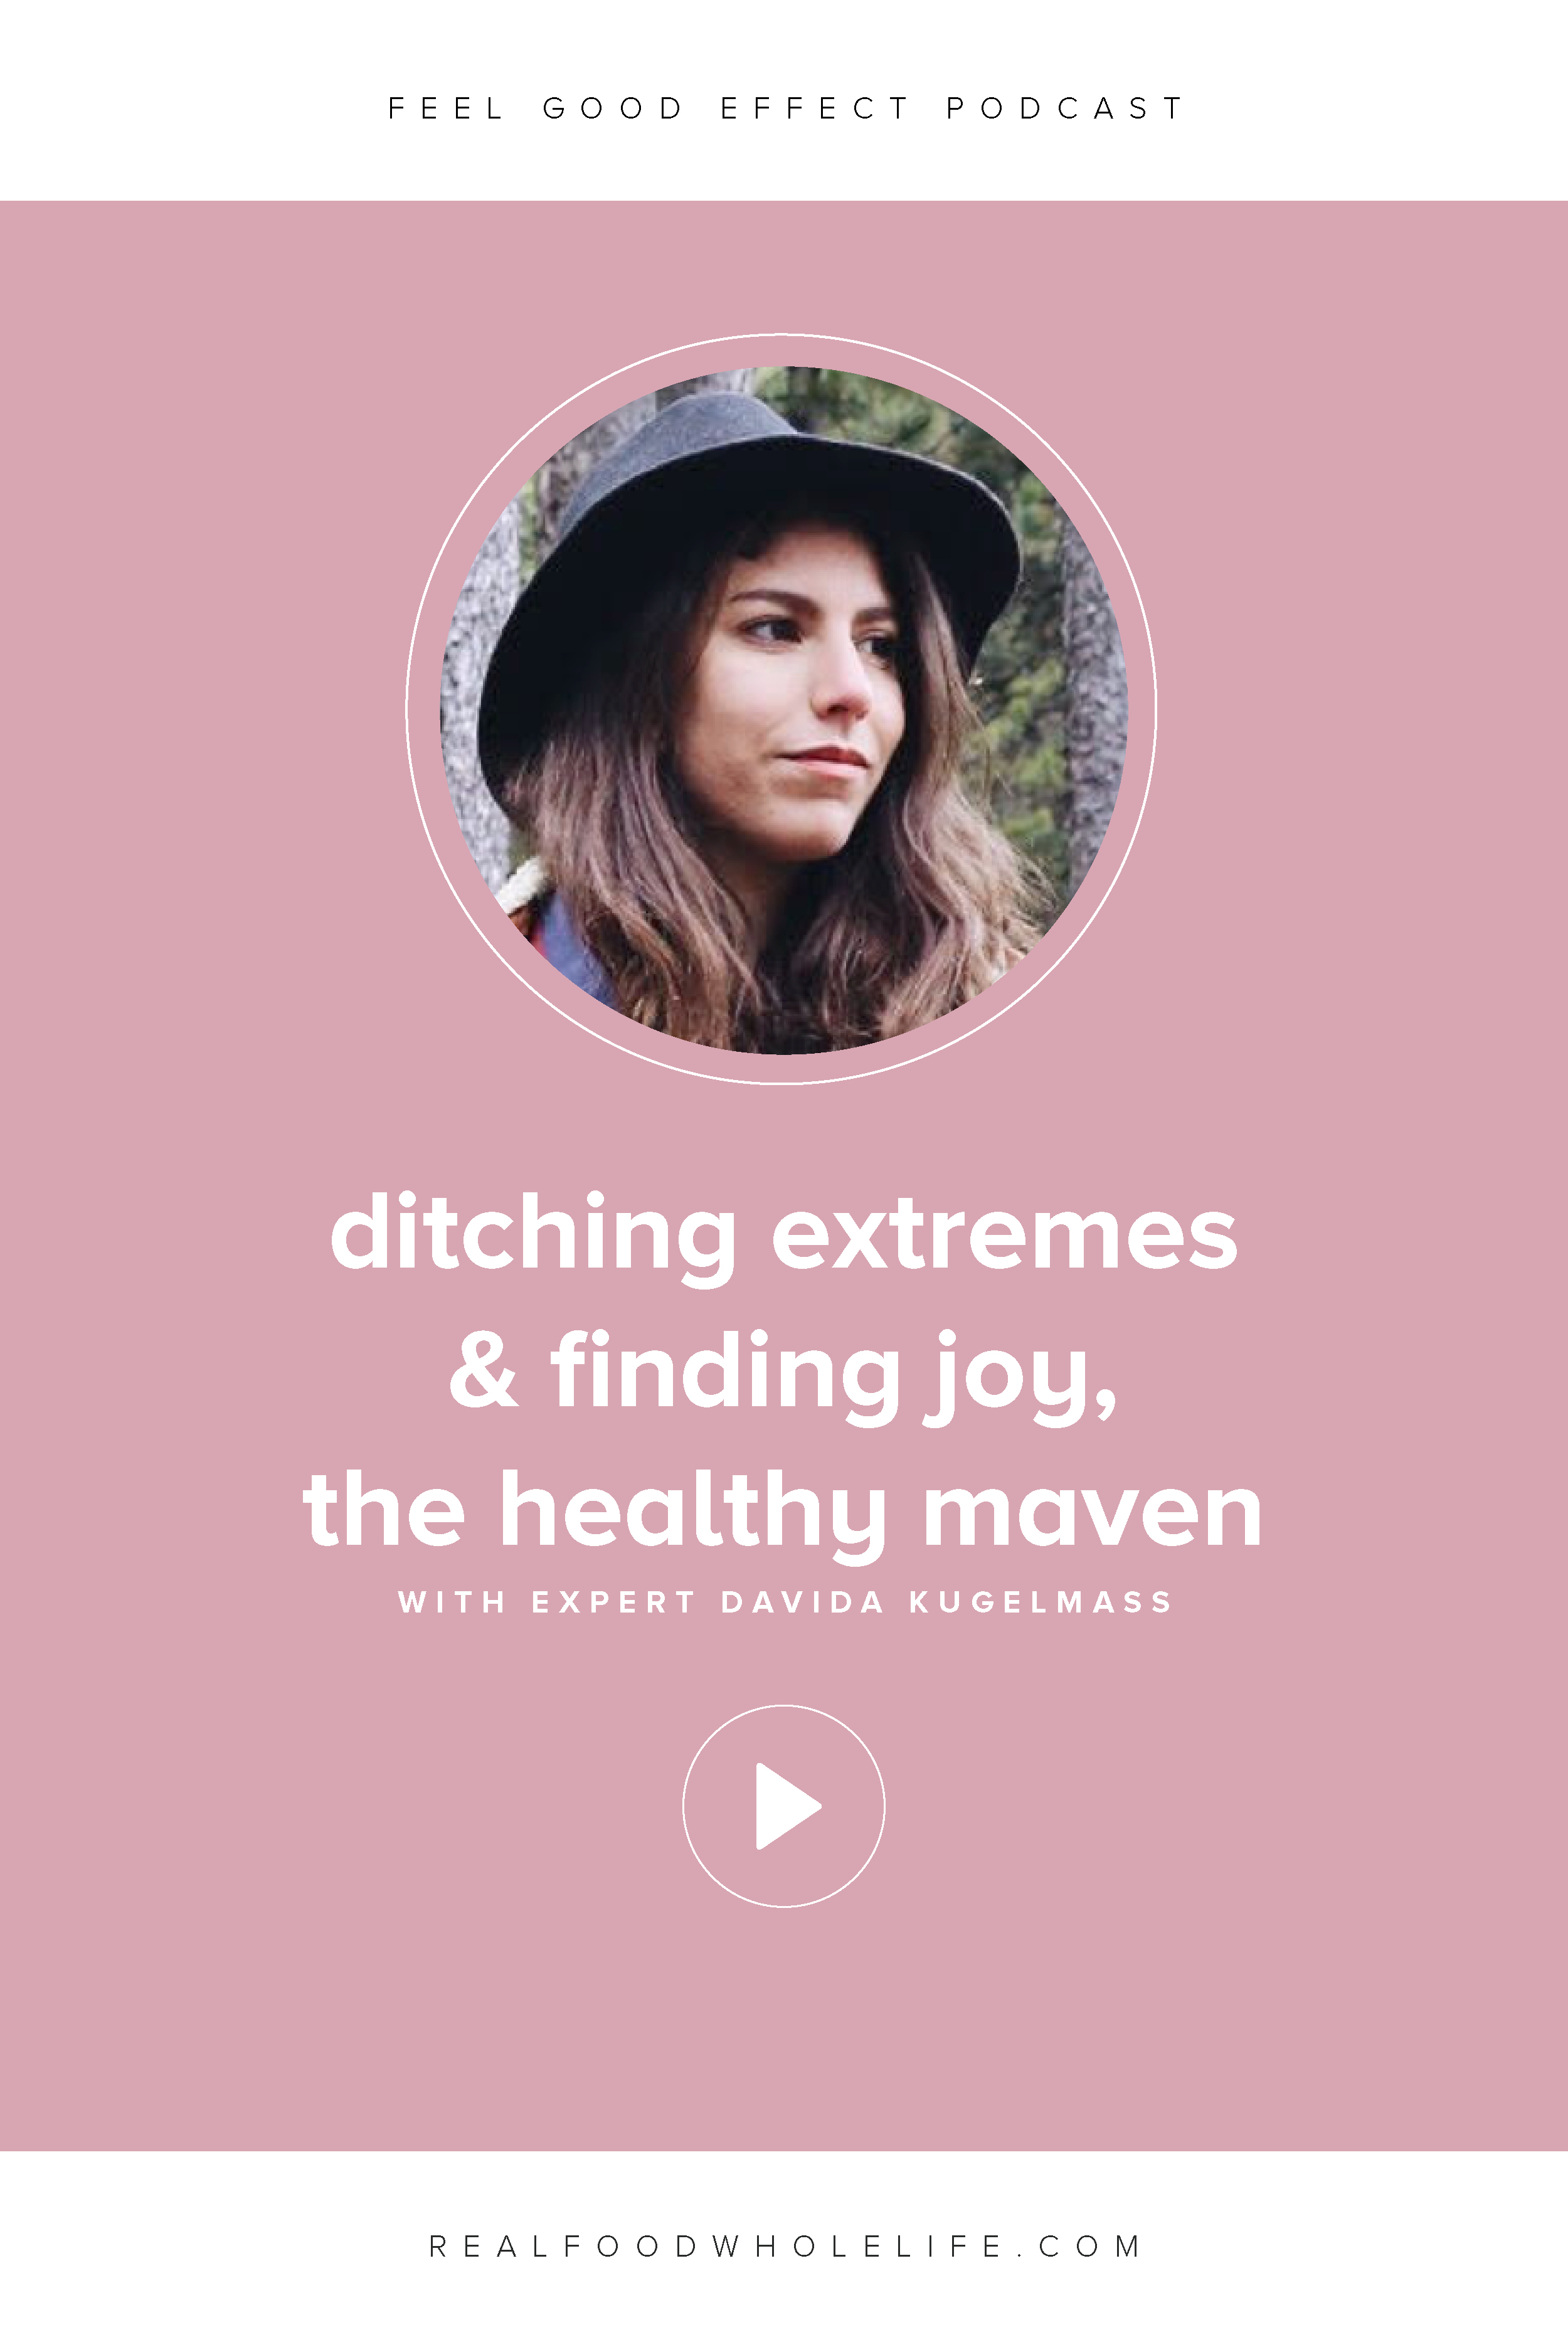 Feel Good Effect Episode 013, Ditching Extremes & Finding Joy with Davida Kugelmass, The Healthy Maven